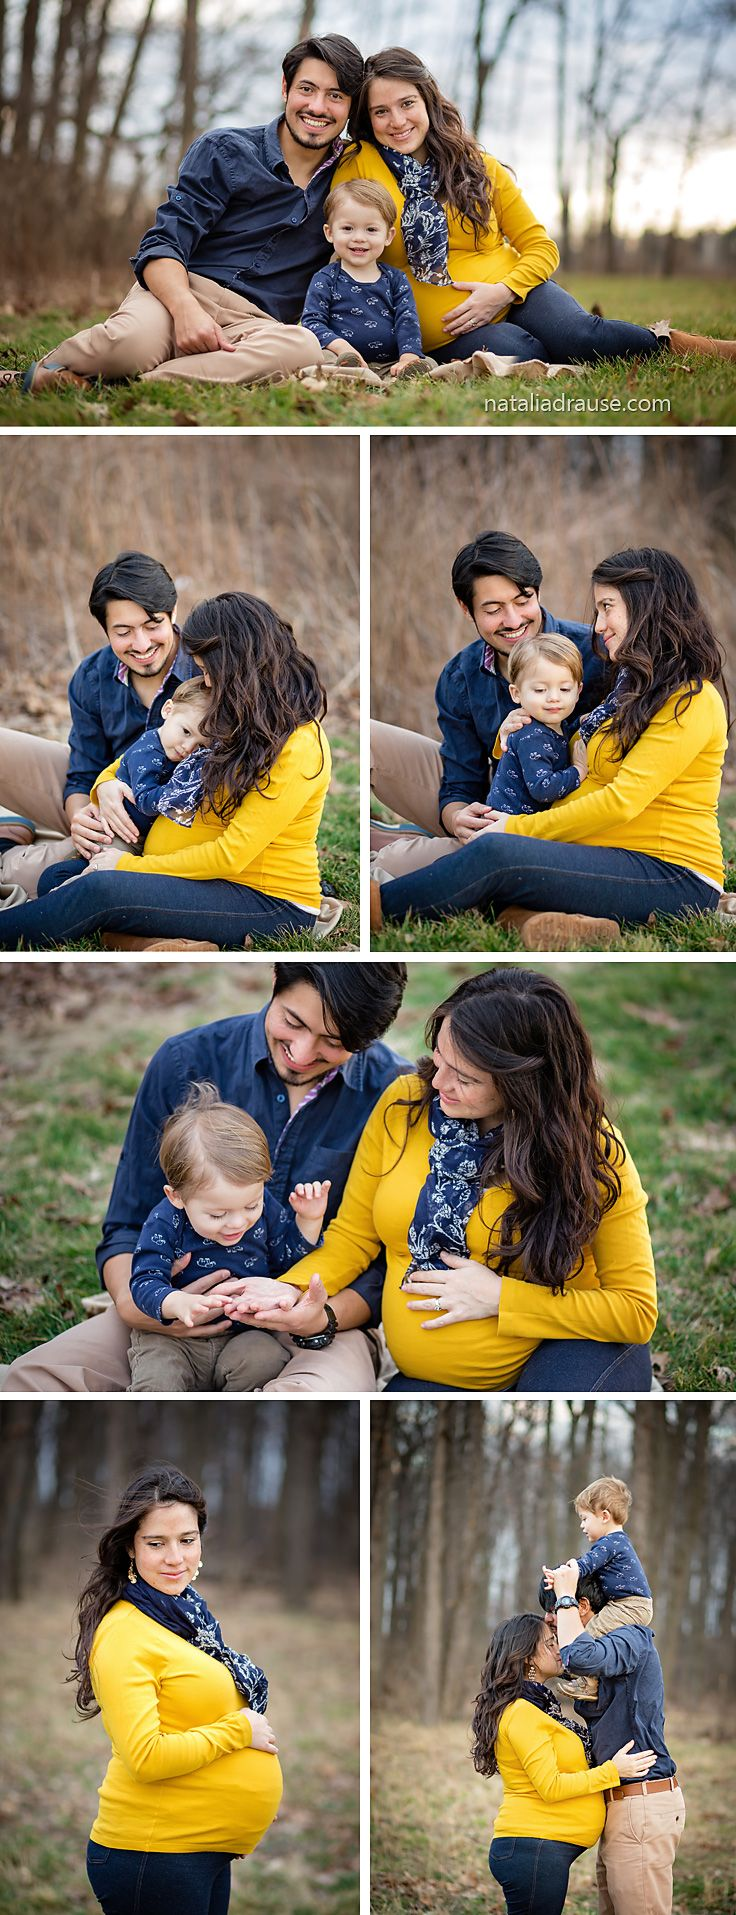 Maternity / family photos | Spring family photo session | What to wear | Outdoor Maternity Photoshoot | South Bend Indiana Photographer